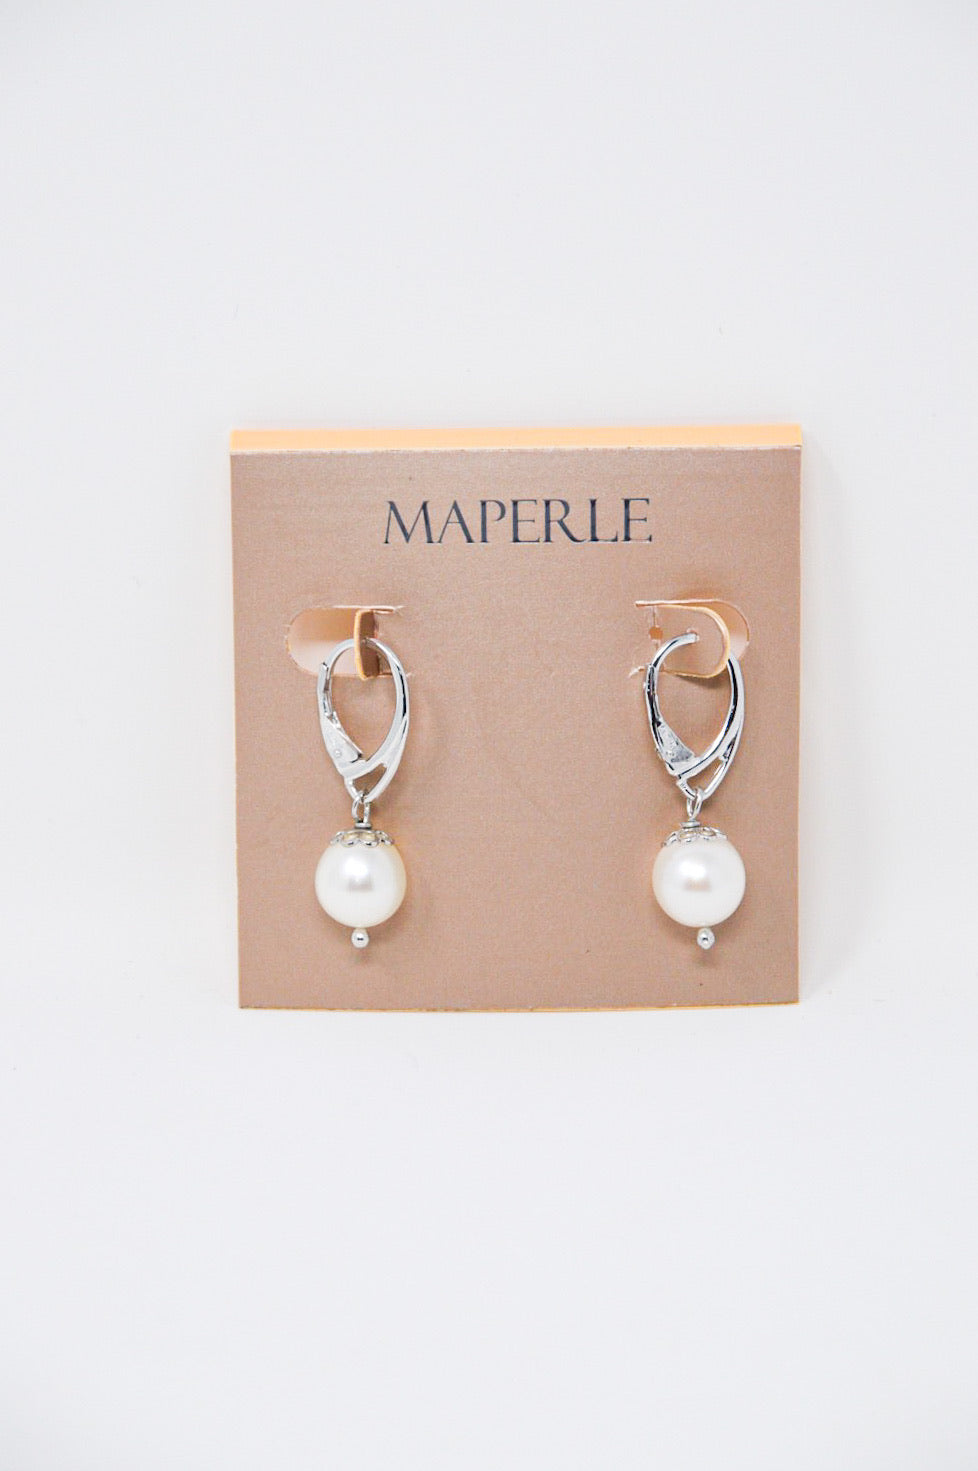 Maperle S365519-RD